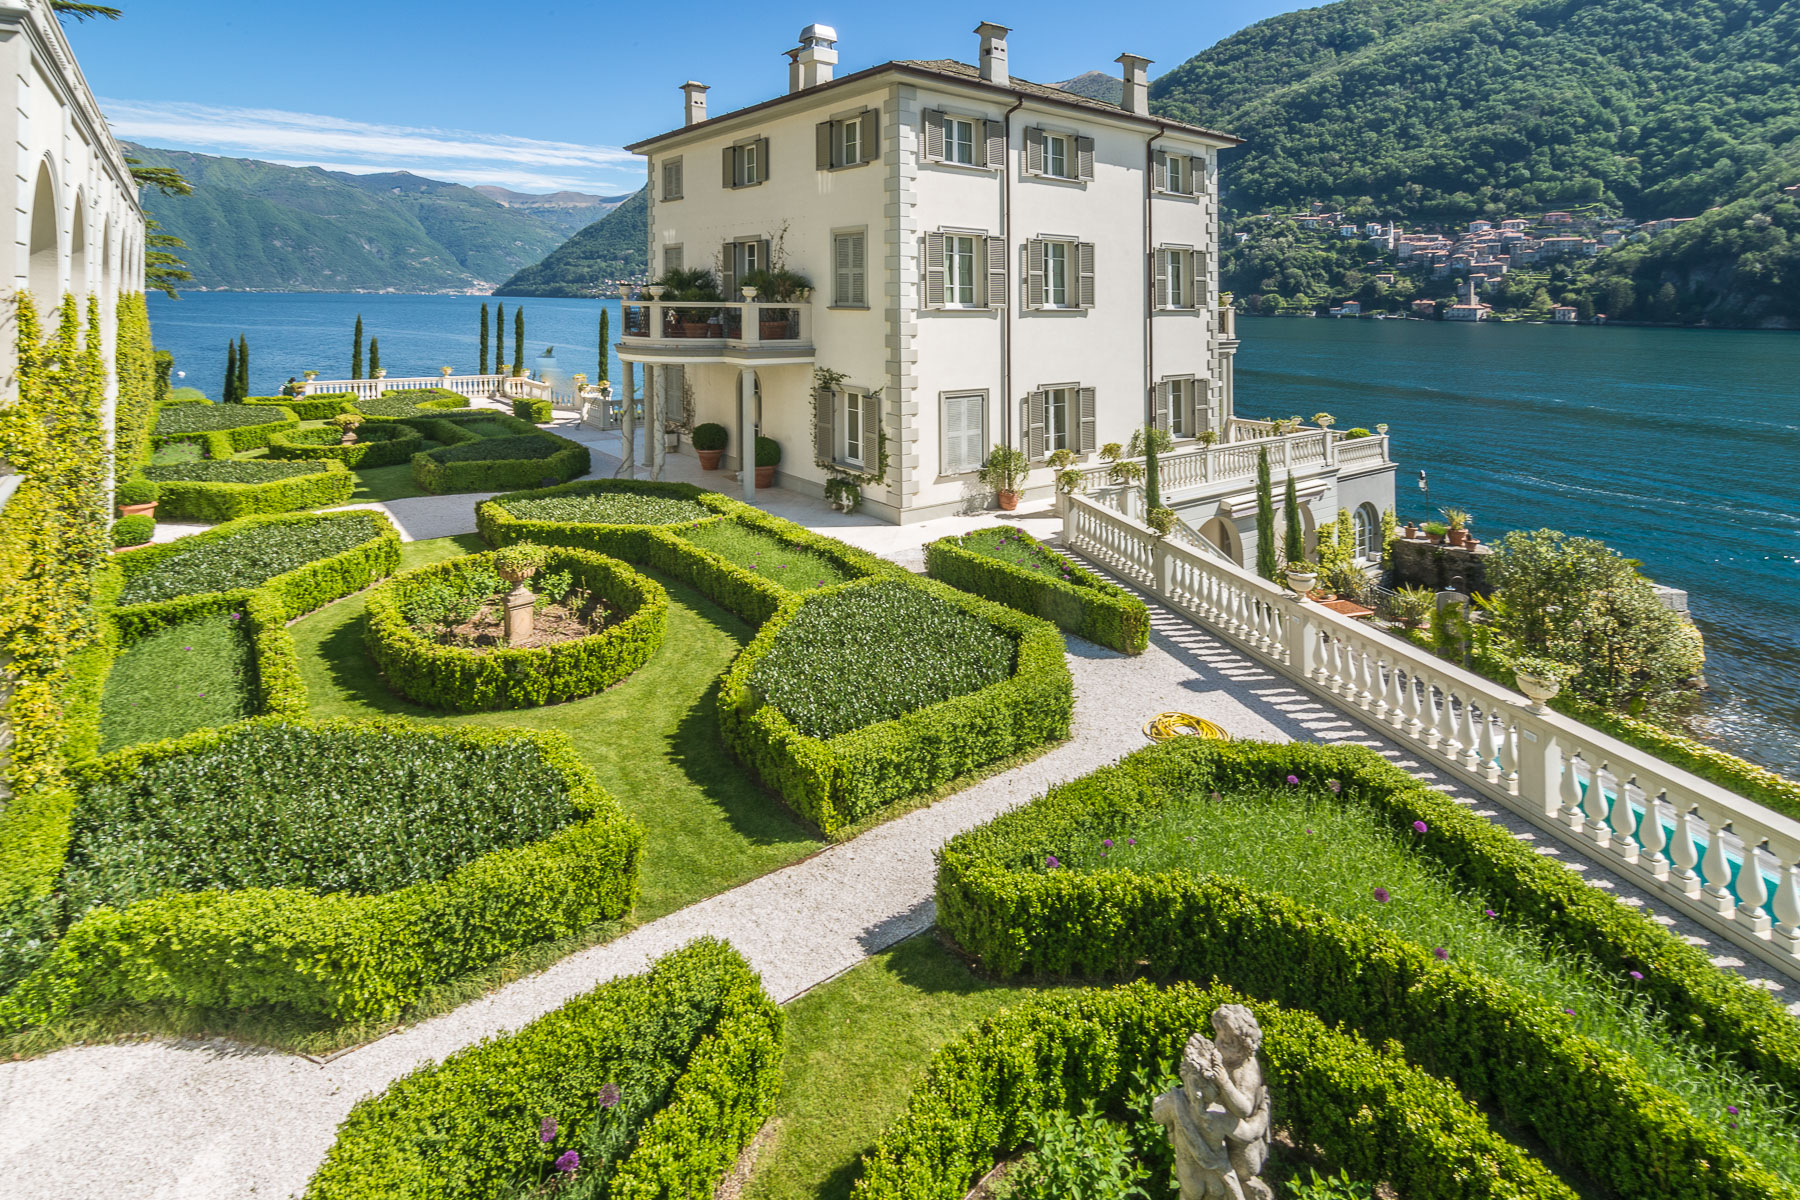 Property 용 매매 에 Gorgeous lakefront trophy estate Laglio, Como 이탈리아